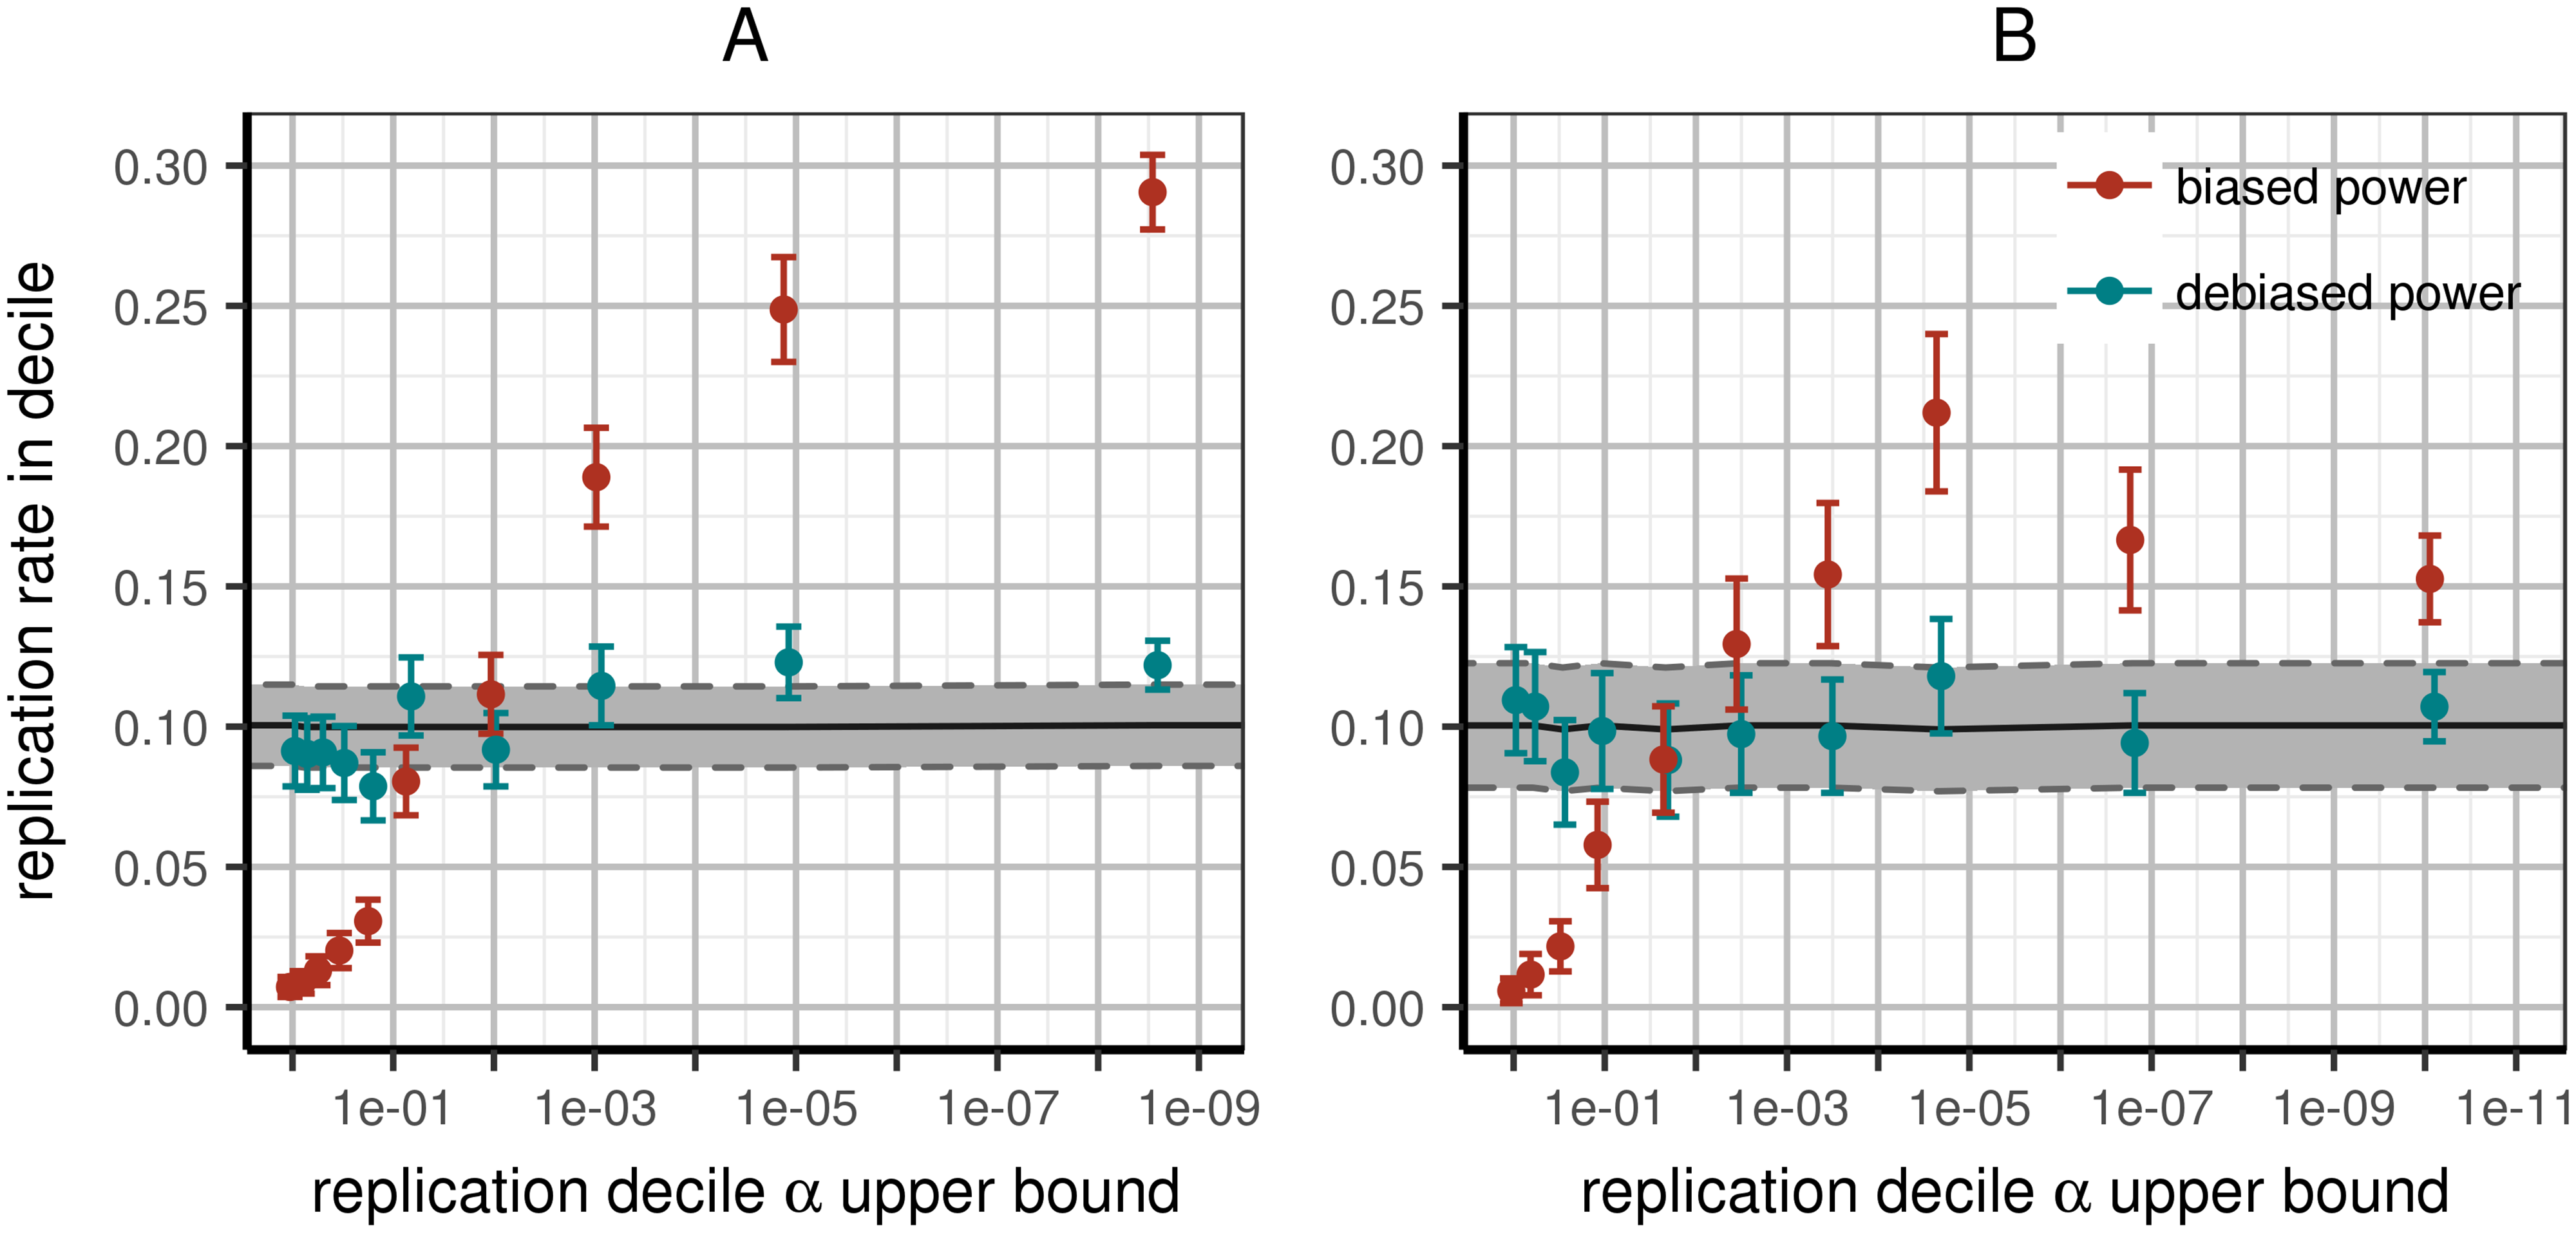 Expected and observed rates of replication in replication deciles.